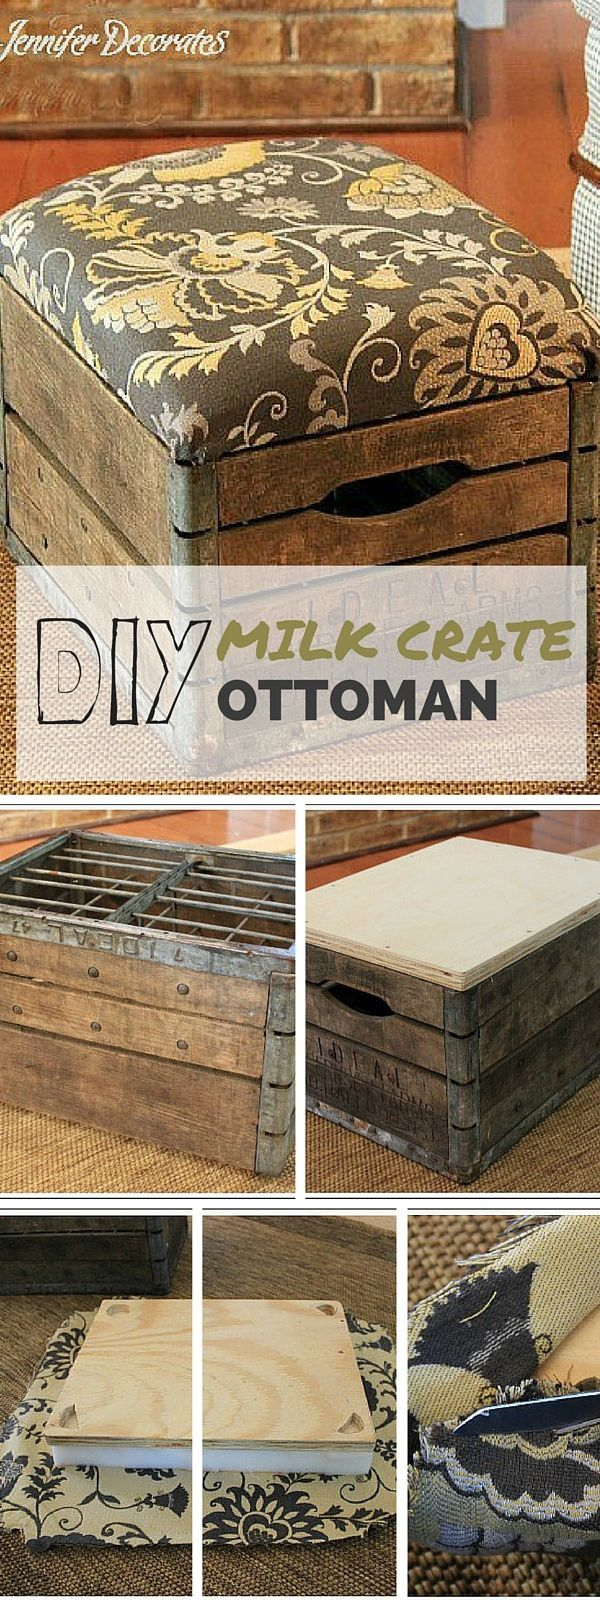 Best 25+ Homemade ottoman ideas on Pinterest | Diy room decor for college,  Homemade room decorations and DIY storage projects for home